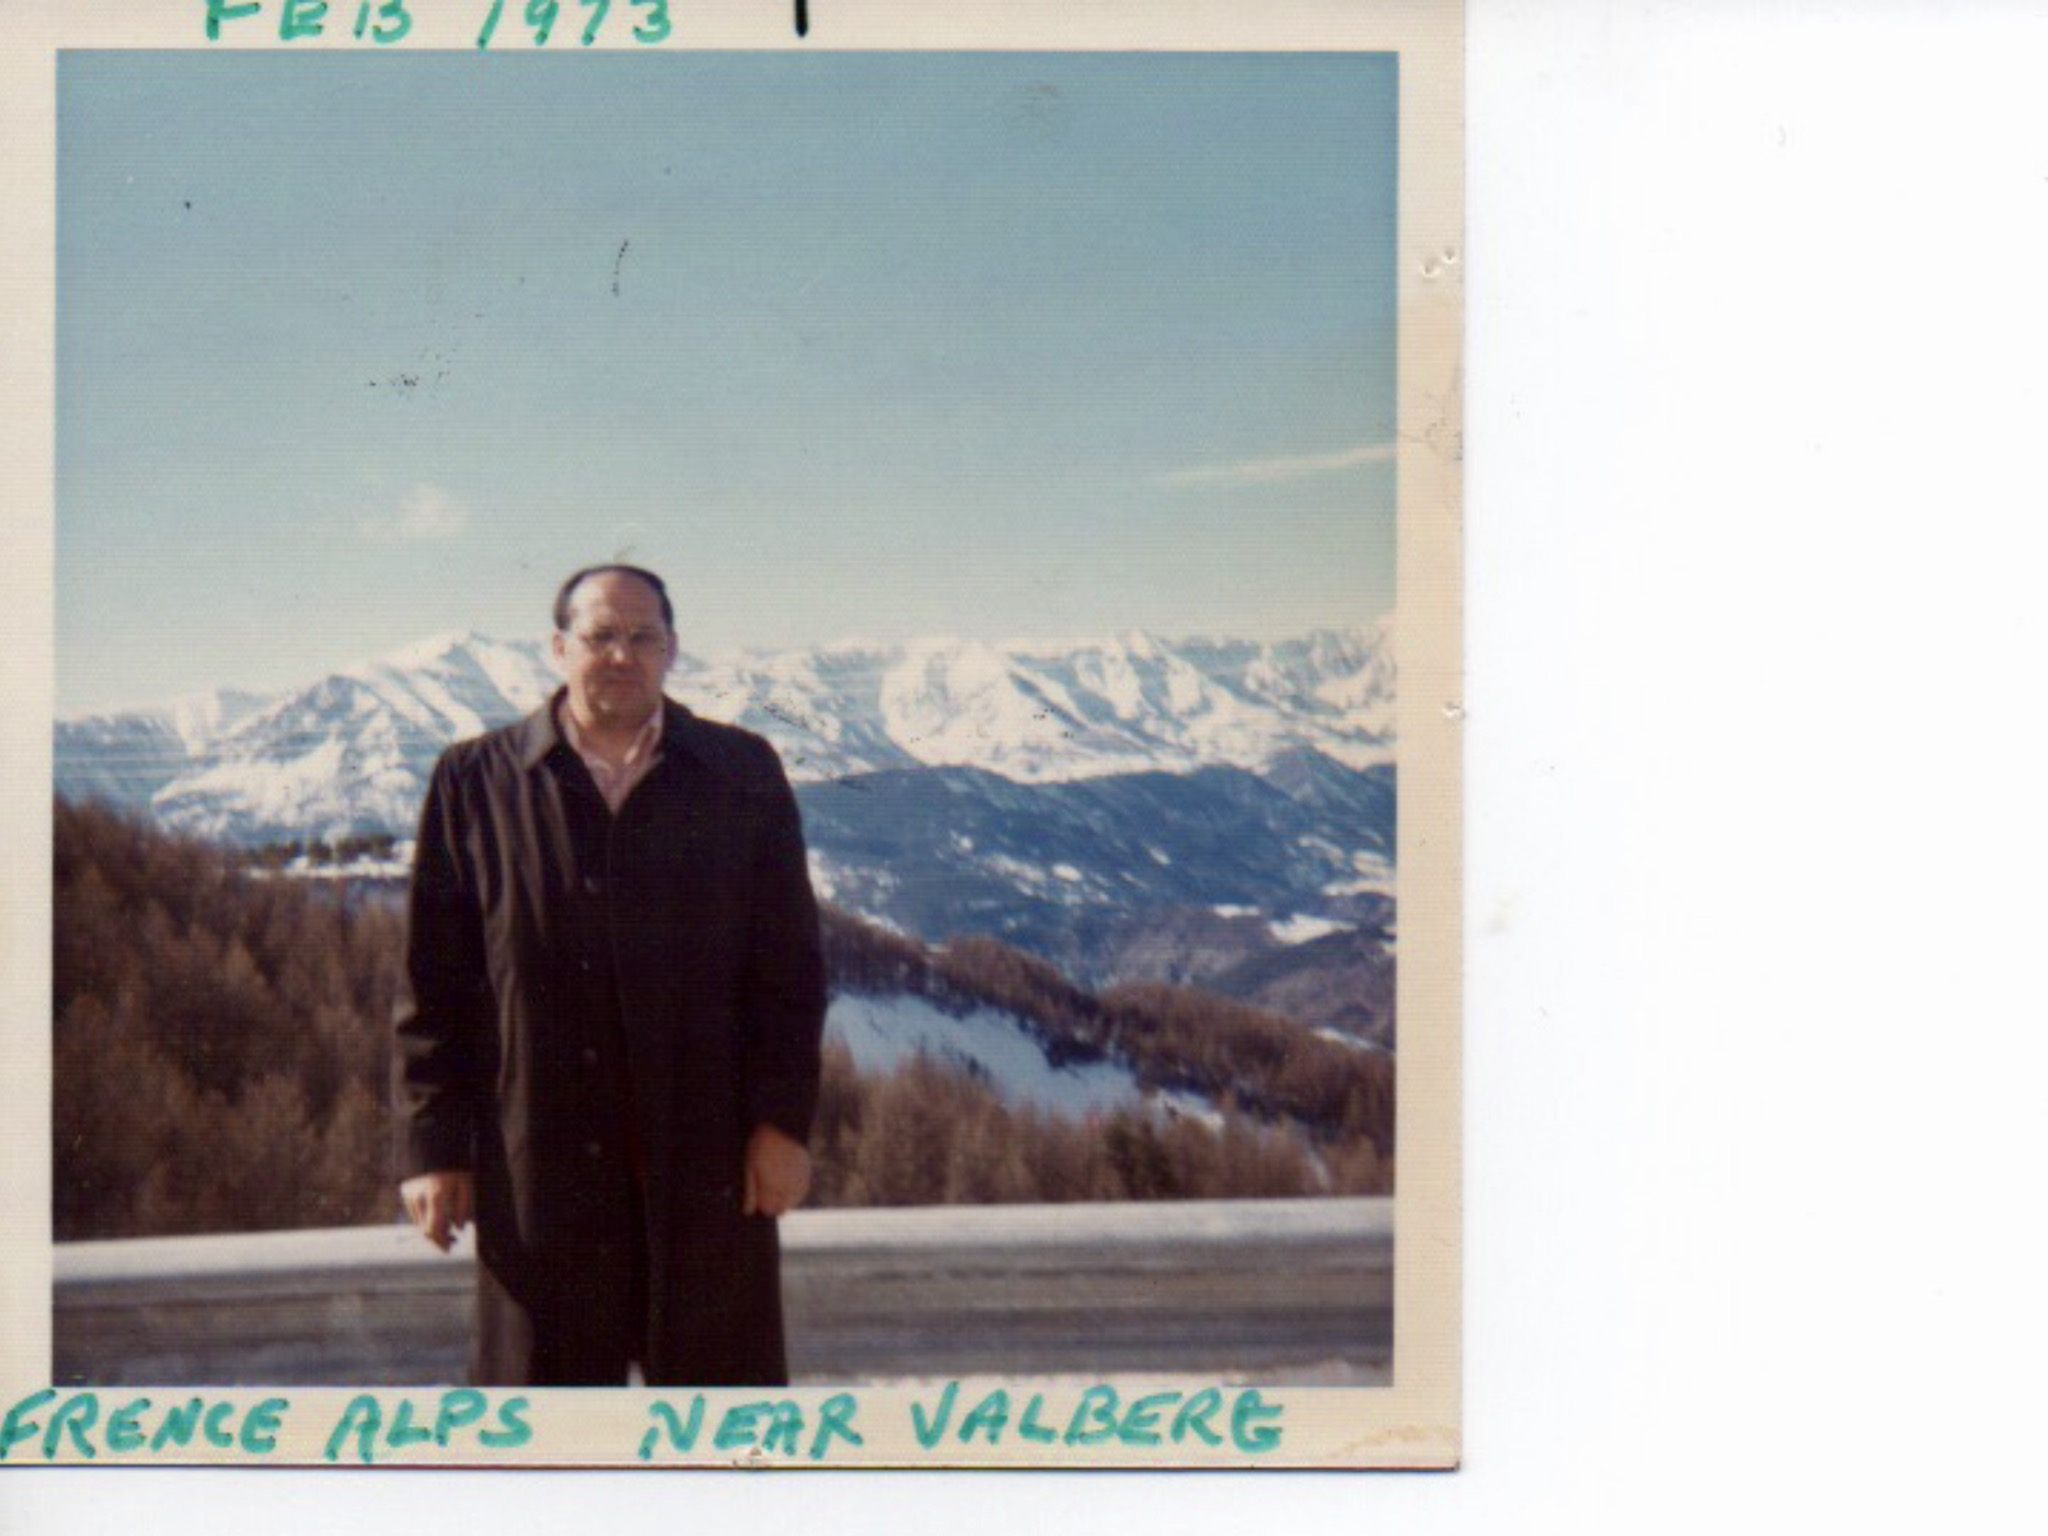 Roland in the French Alps near Monte Carlo, 1973. This is from their first overseas trip.